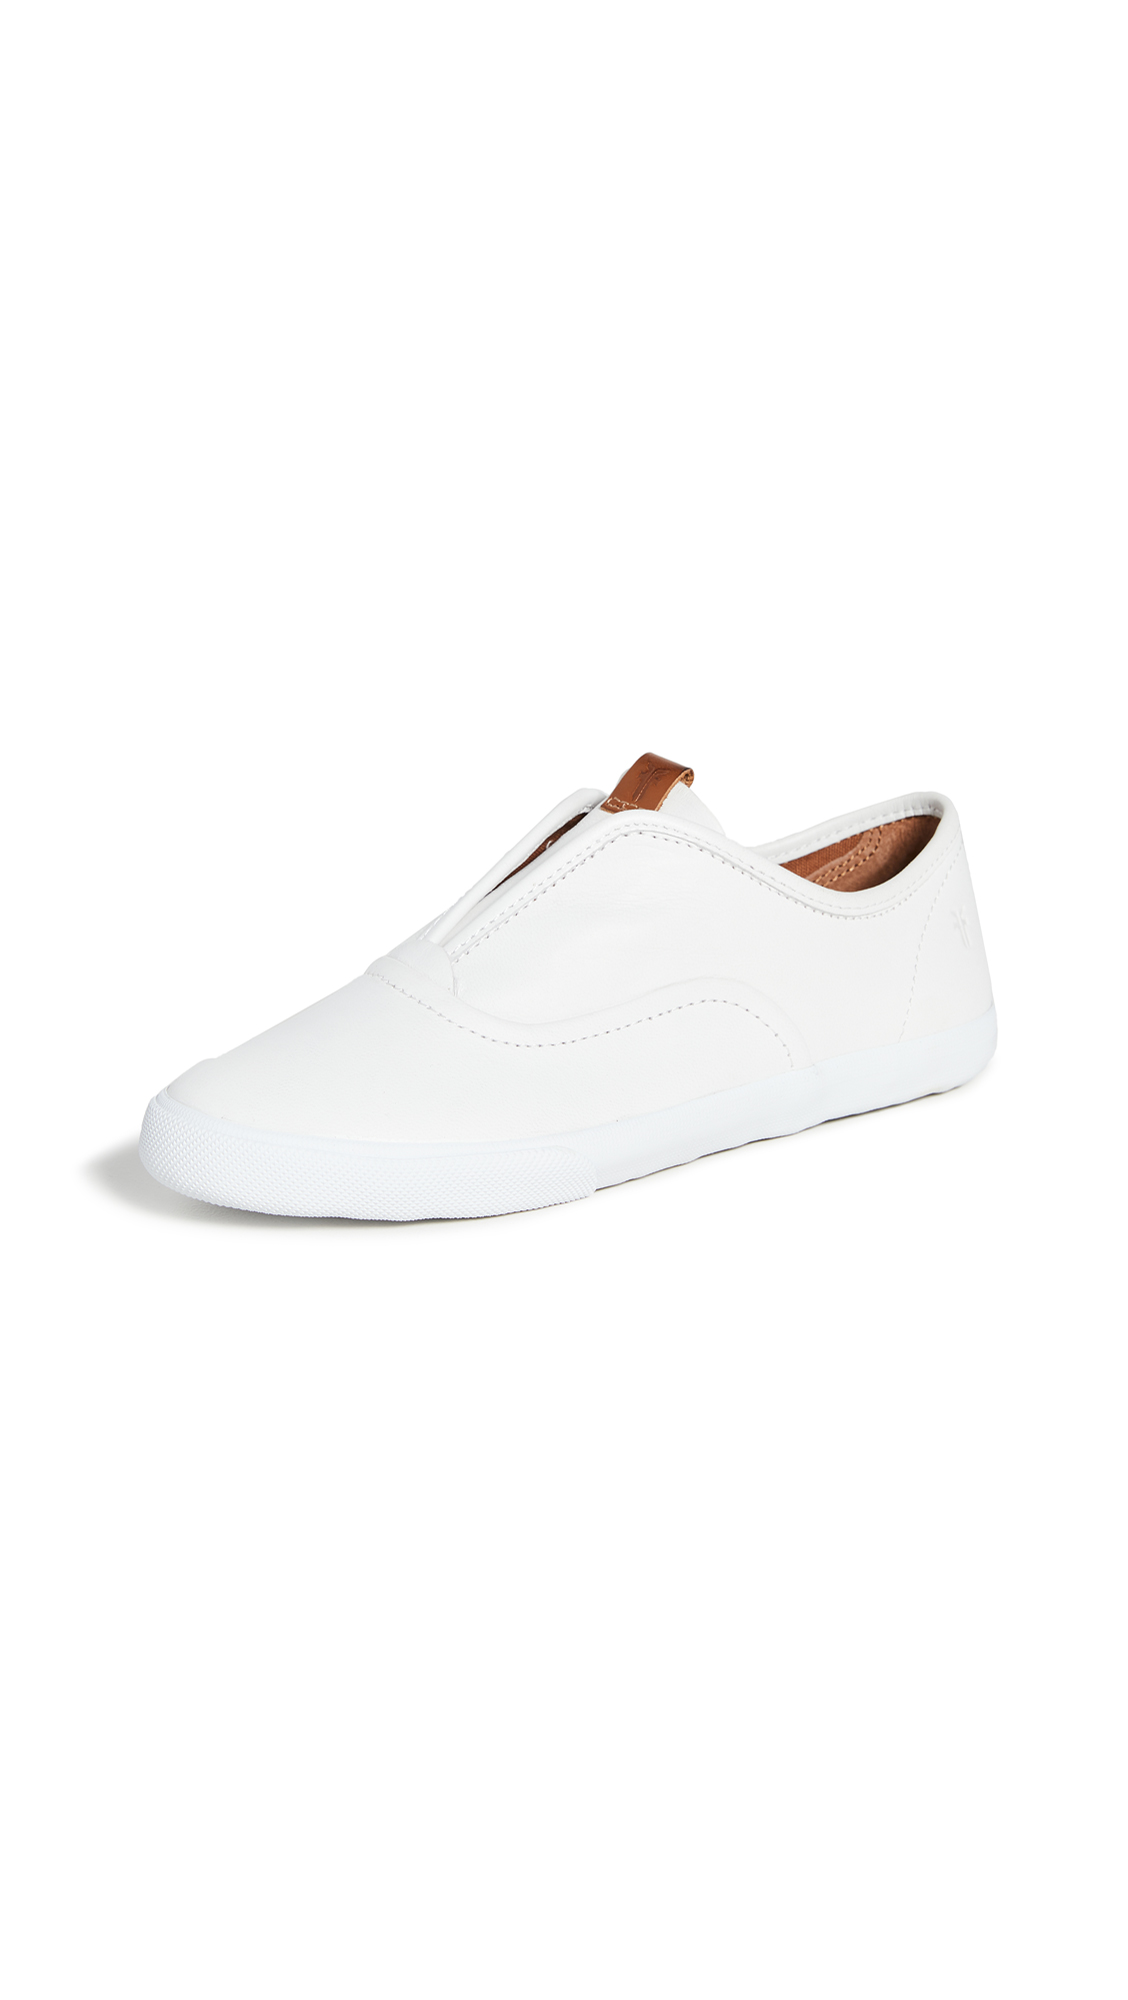 Frye Maya CVO Slip On Sneakers